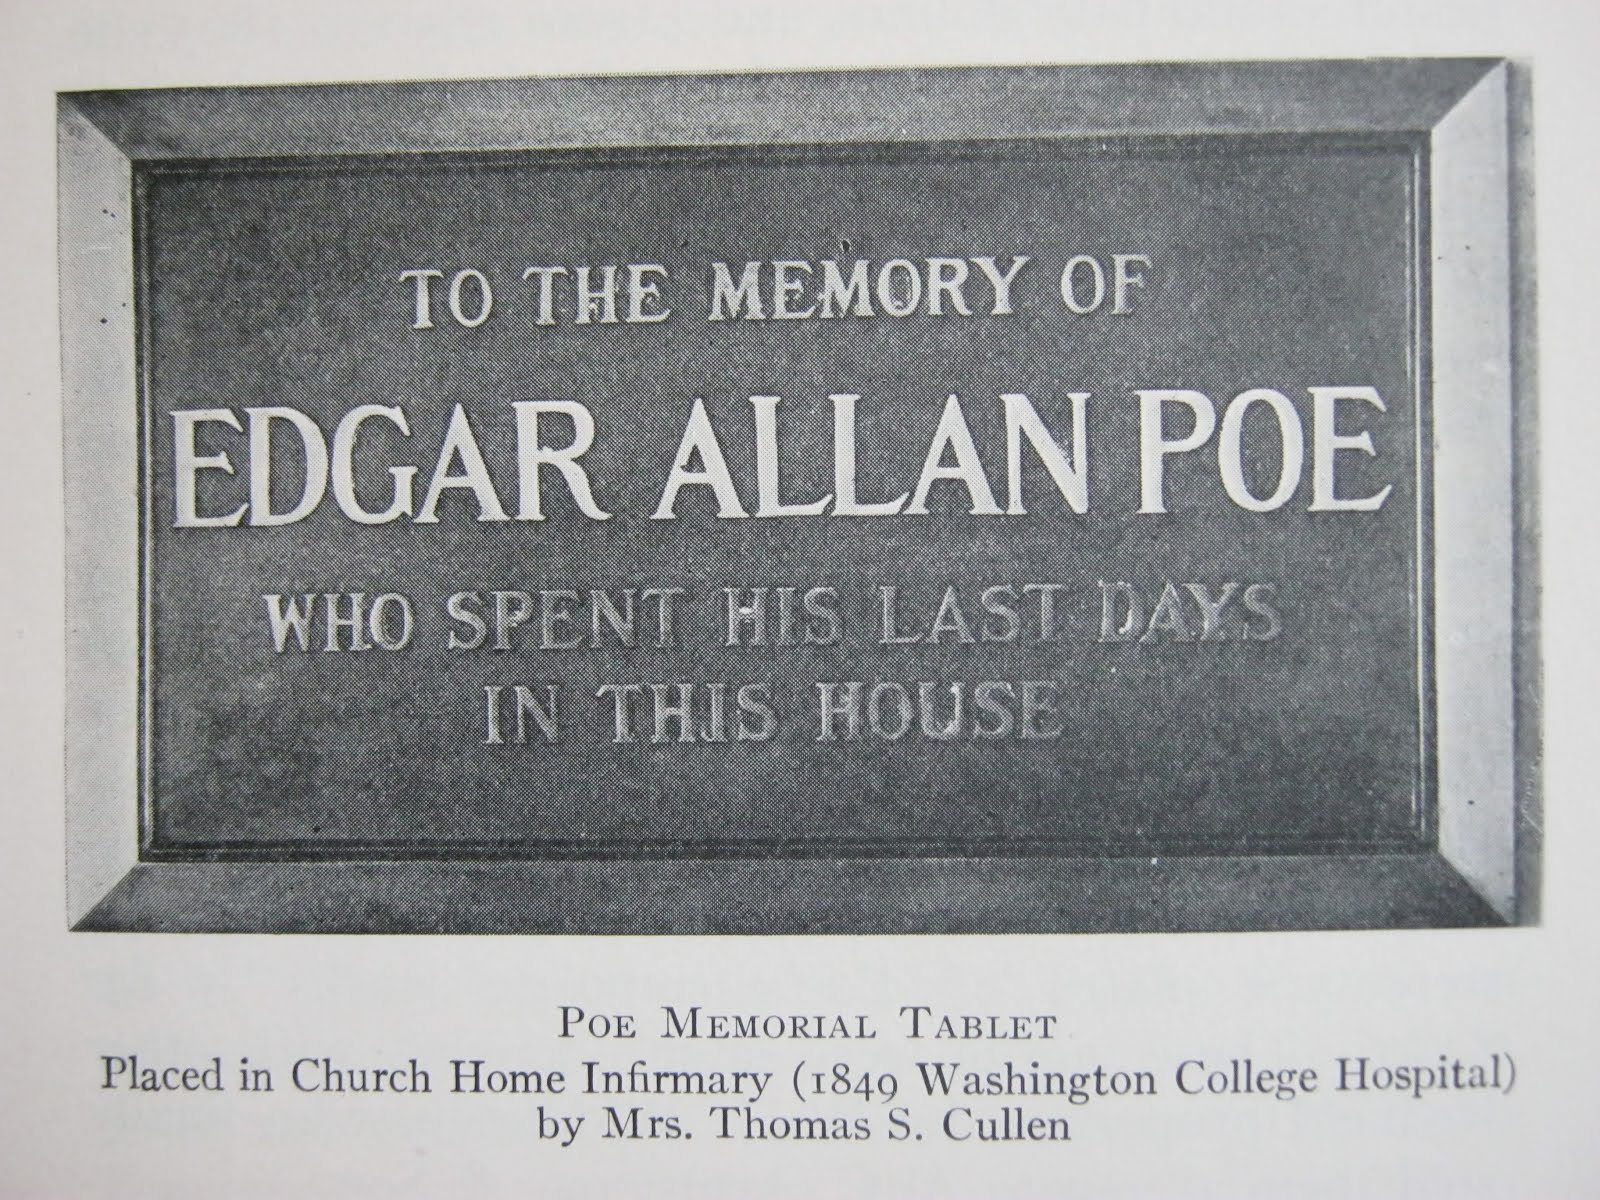 Death of Edgar Allan Poe